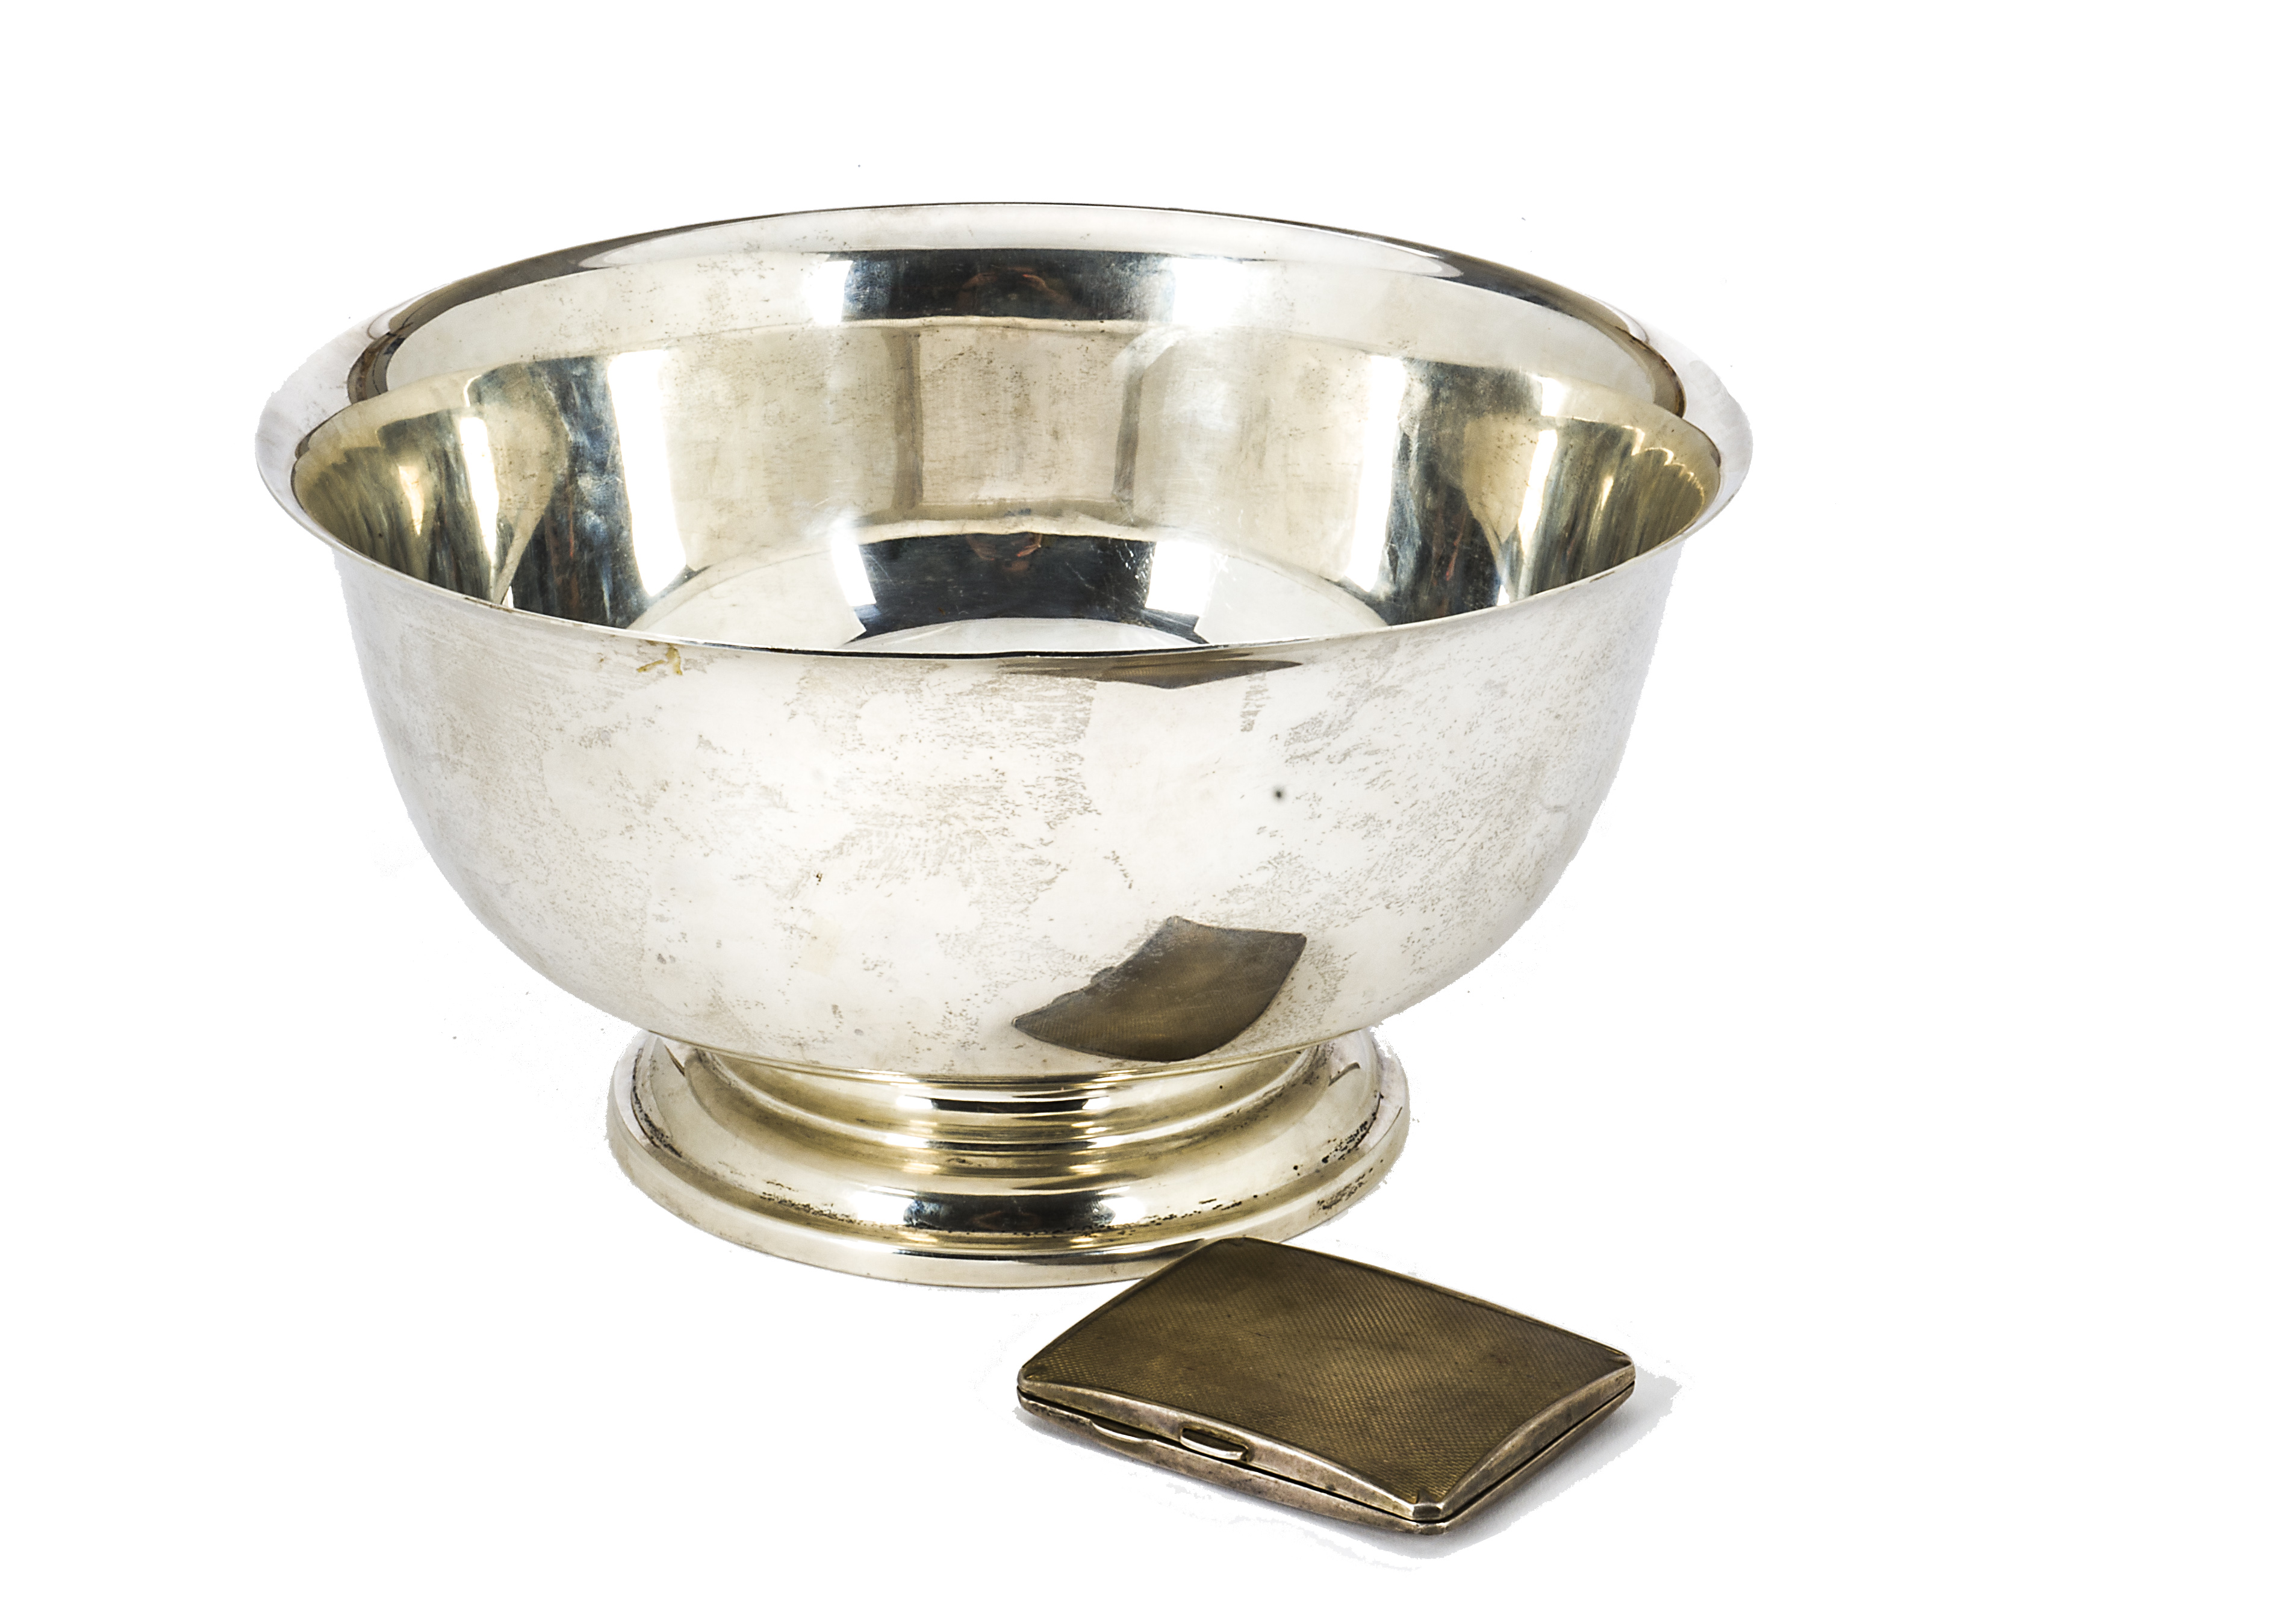 Lot 23 - An Art Deco style American silver footed bowl by Shrene & Co, plain body, marked to base Shrene & Co